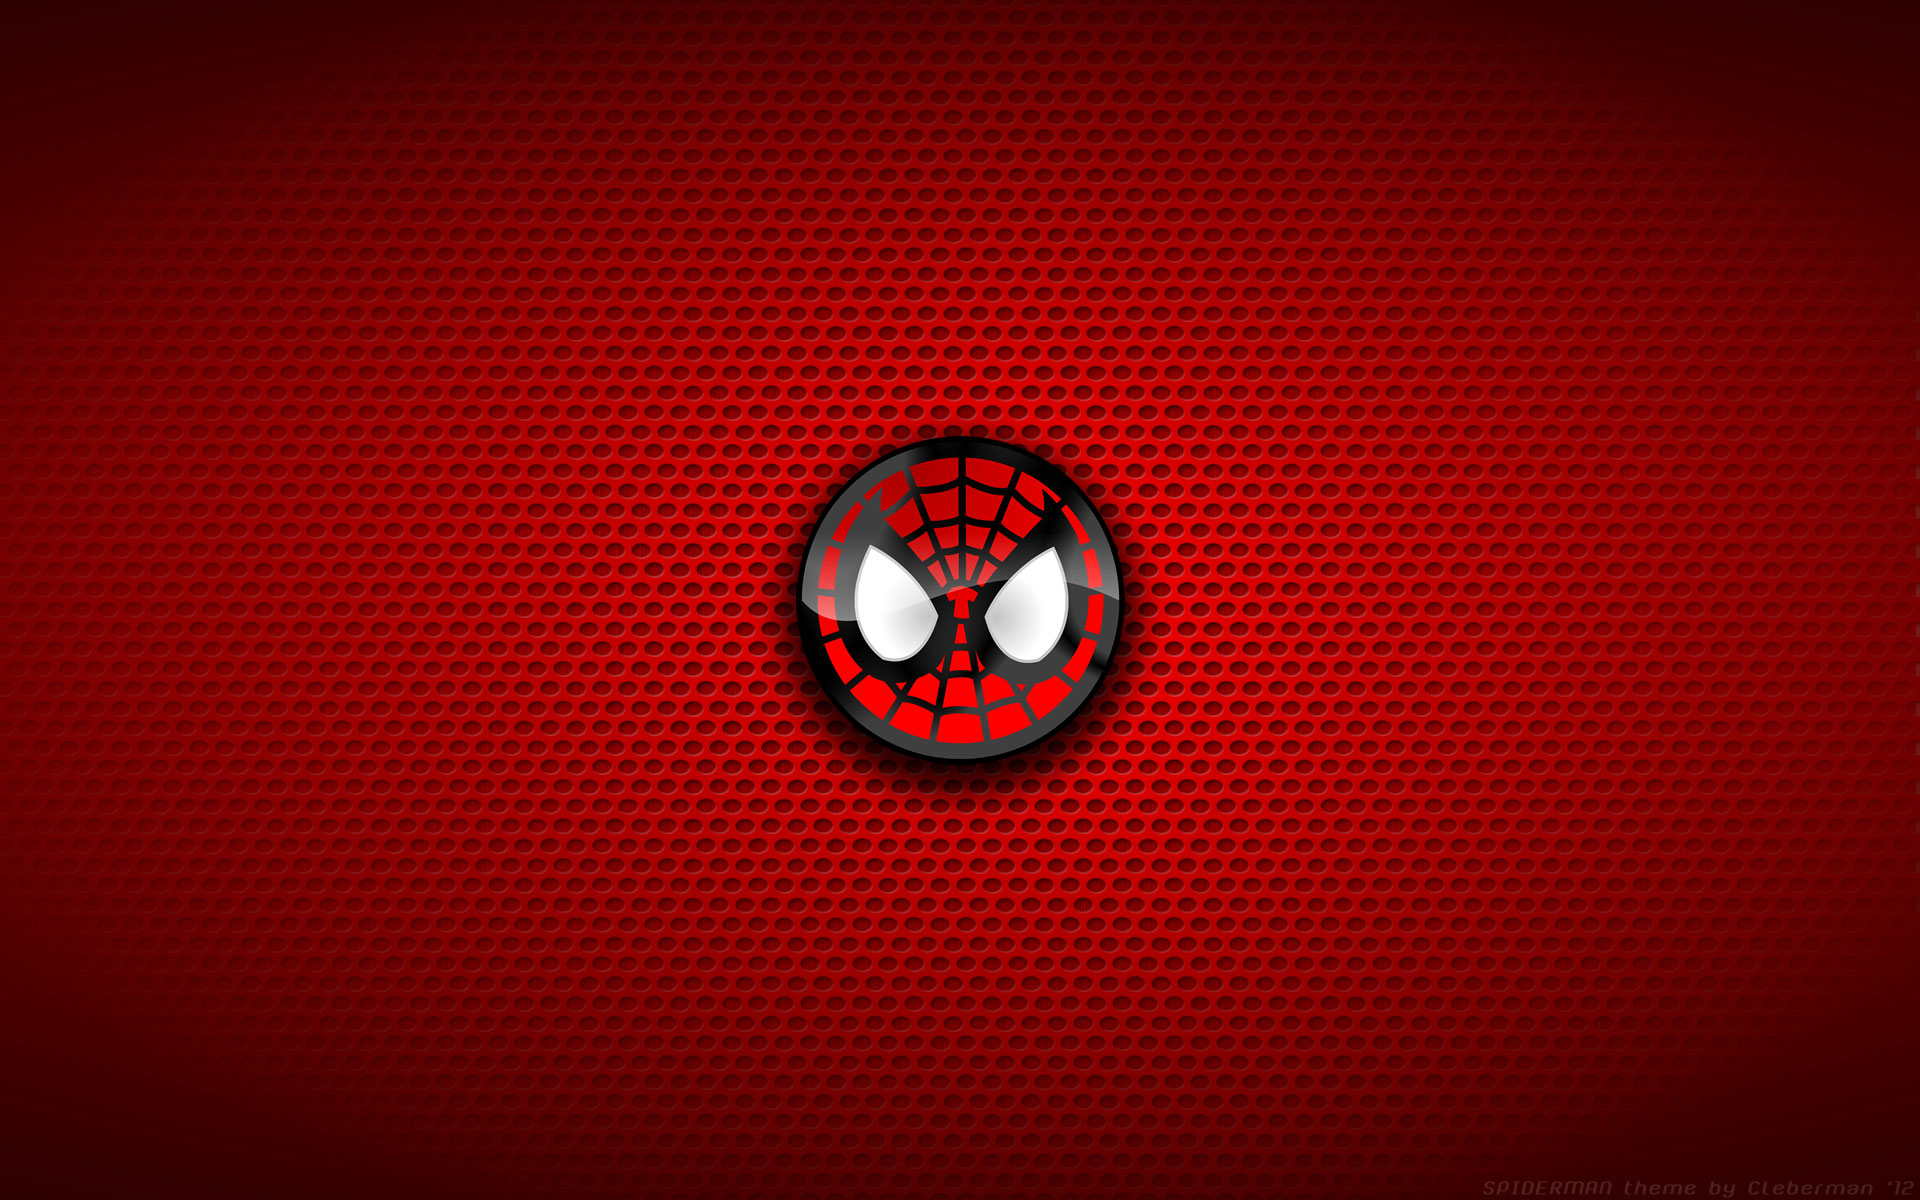 Funny Stuff about Animals Nature Spiderman Logo Wallpaper Hd 1080p 1920x1200